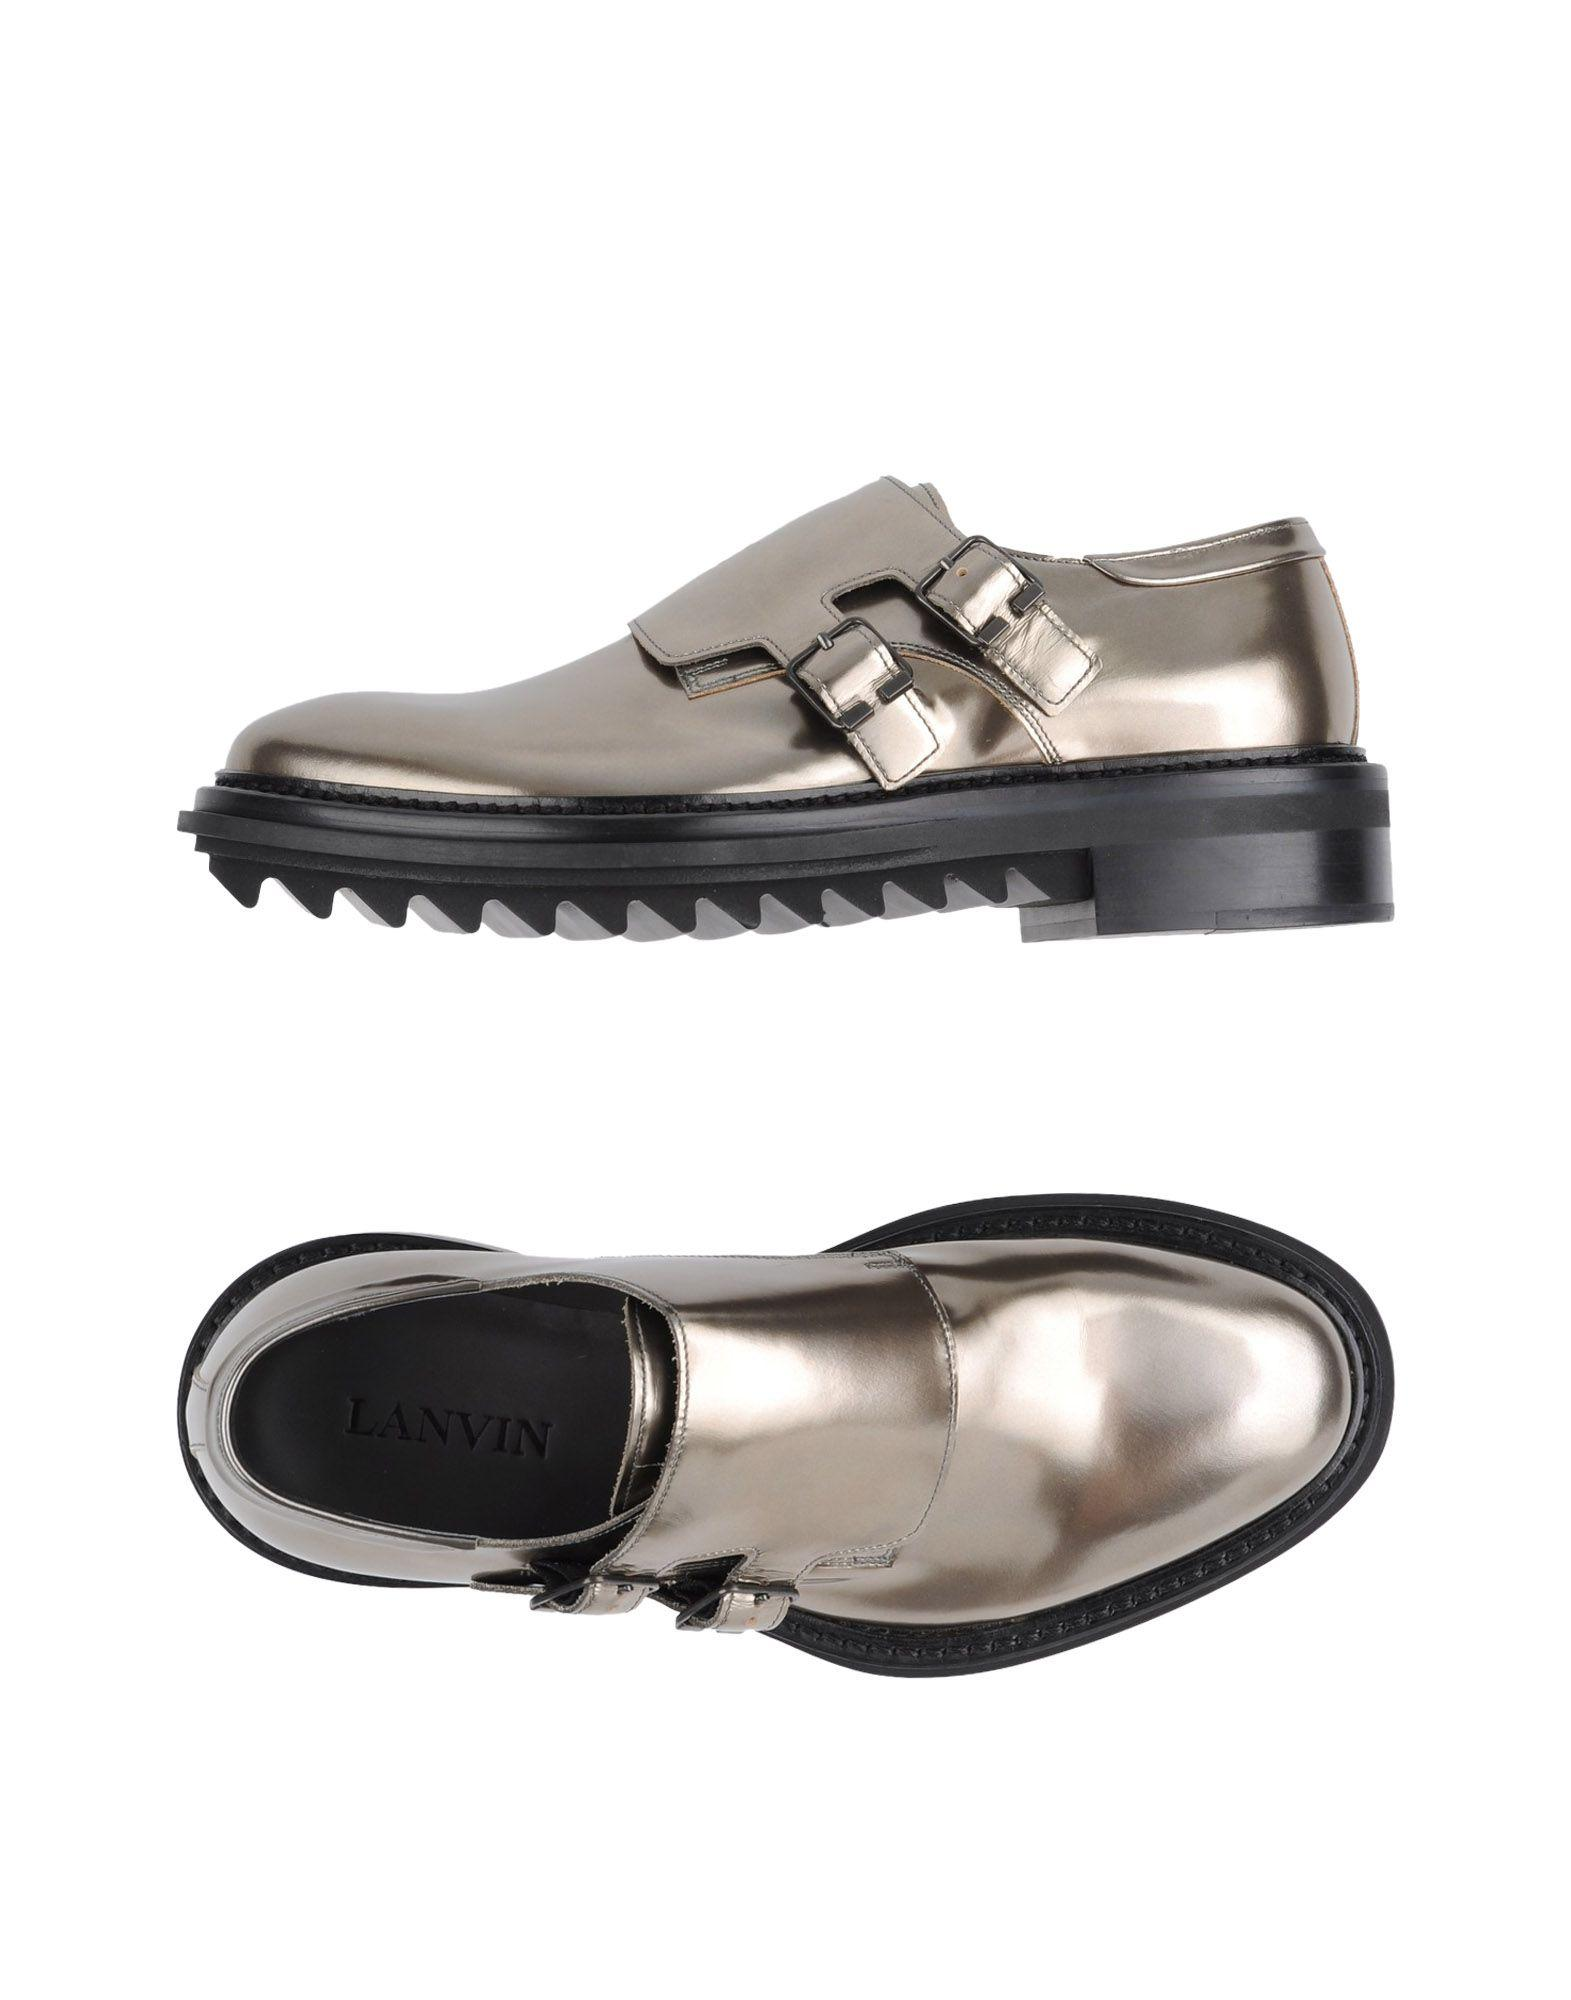 Lanvin Loafers In Bronze